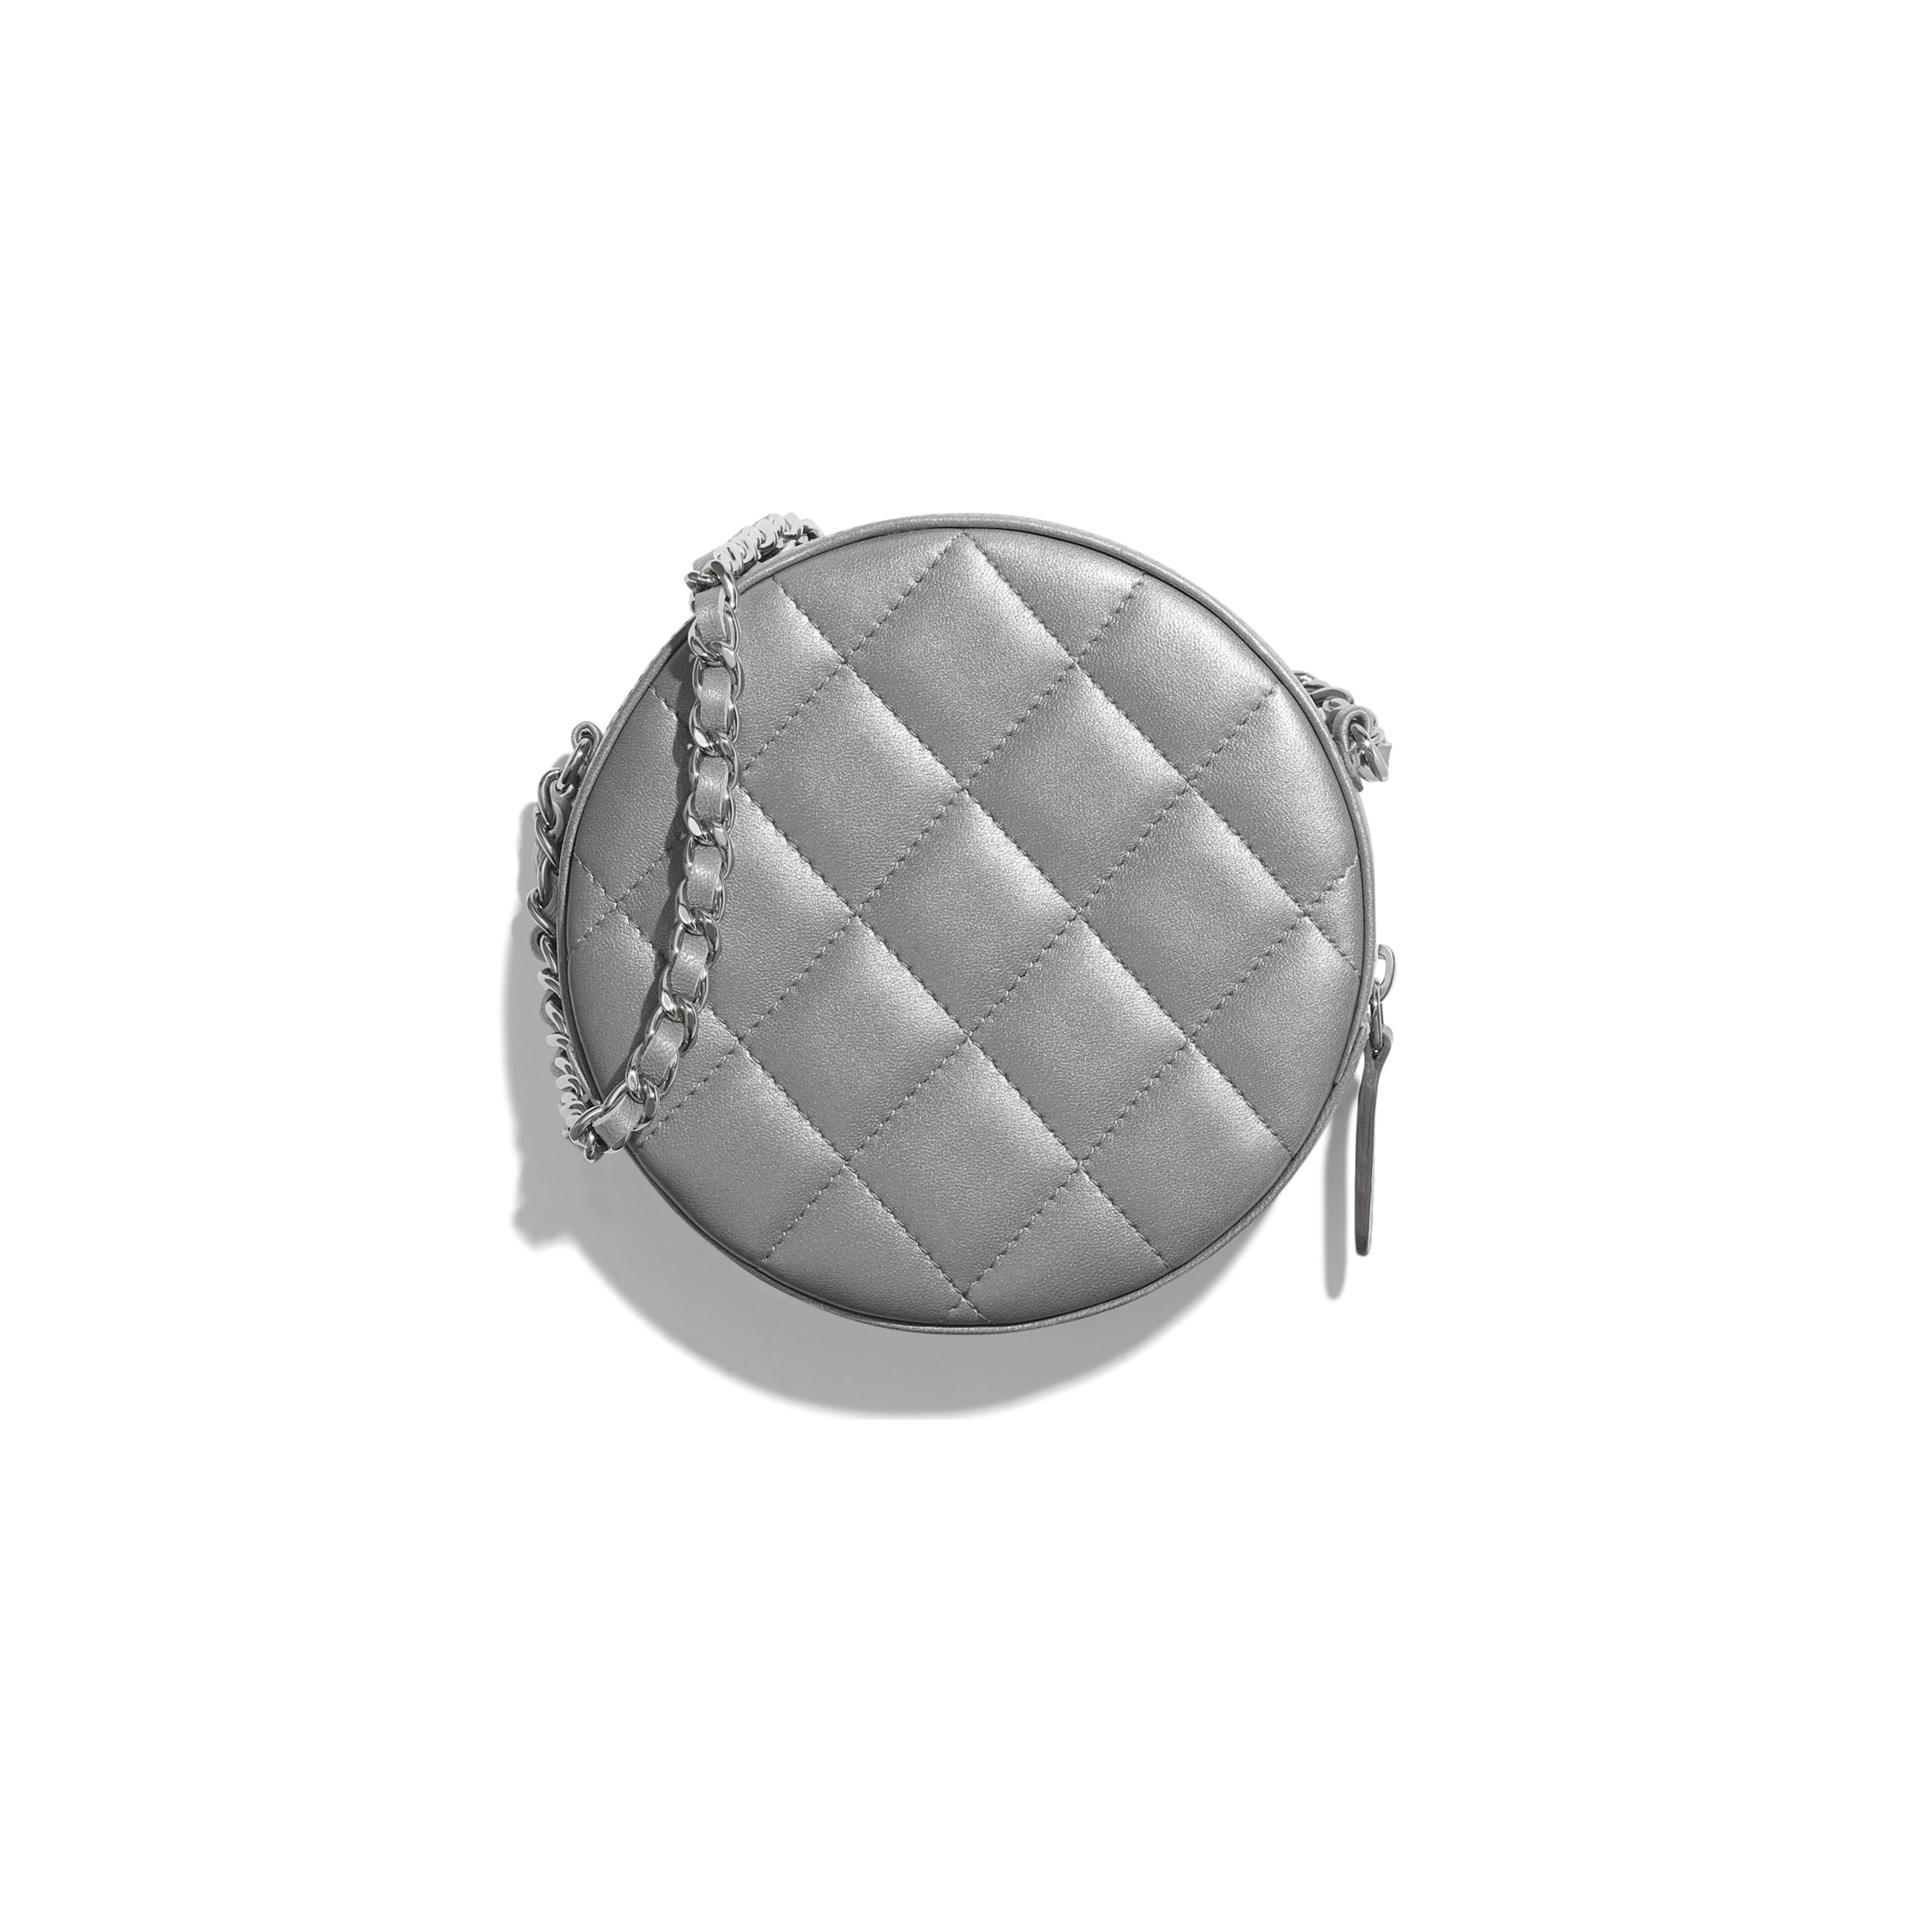 Classic Clutch With Chain - Grey, Silver & Pink - Sequins, Glass Pearls & Silver-Tone Metal - CHANEL - Alternative view - see standard sized version